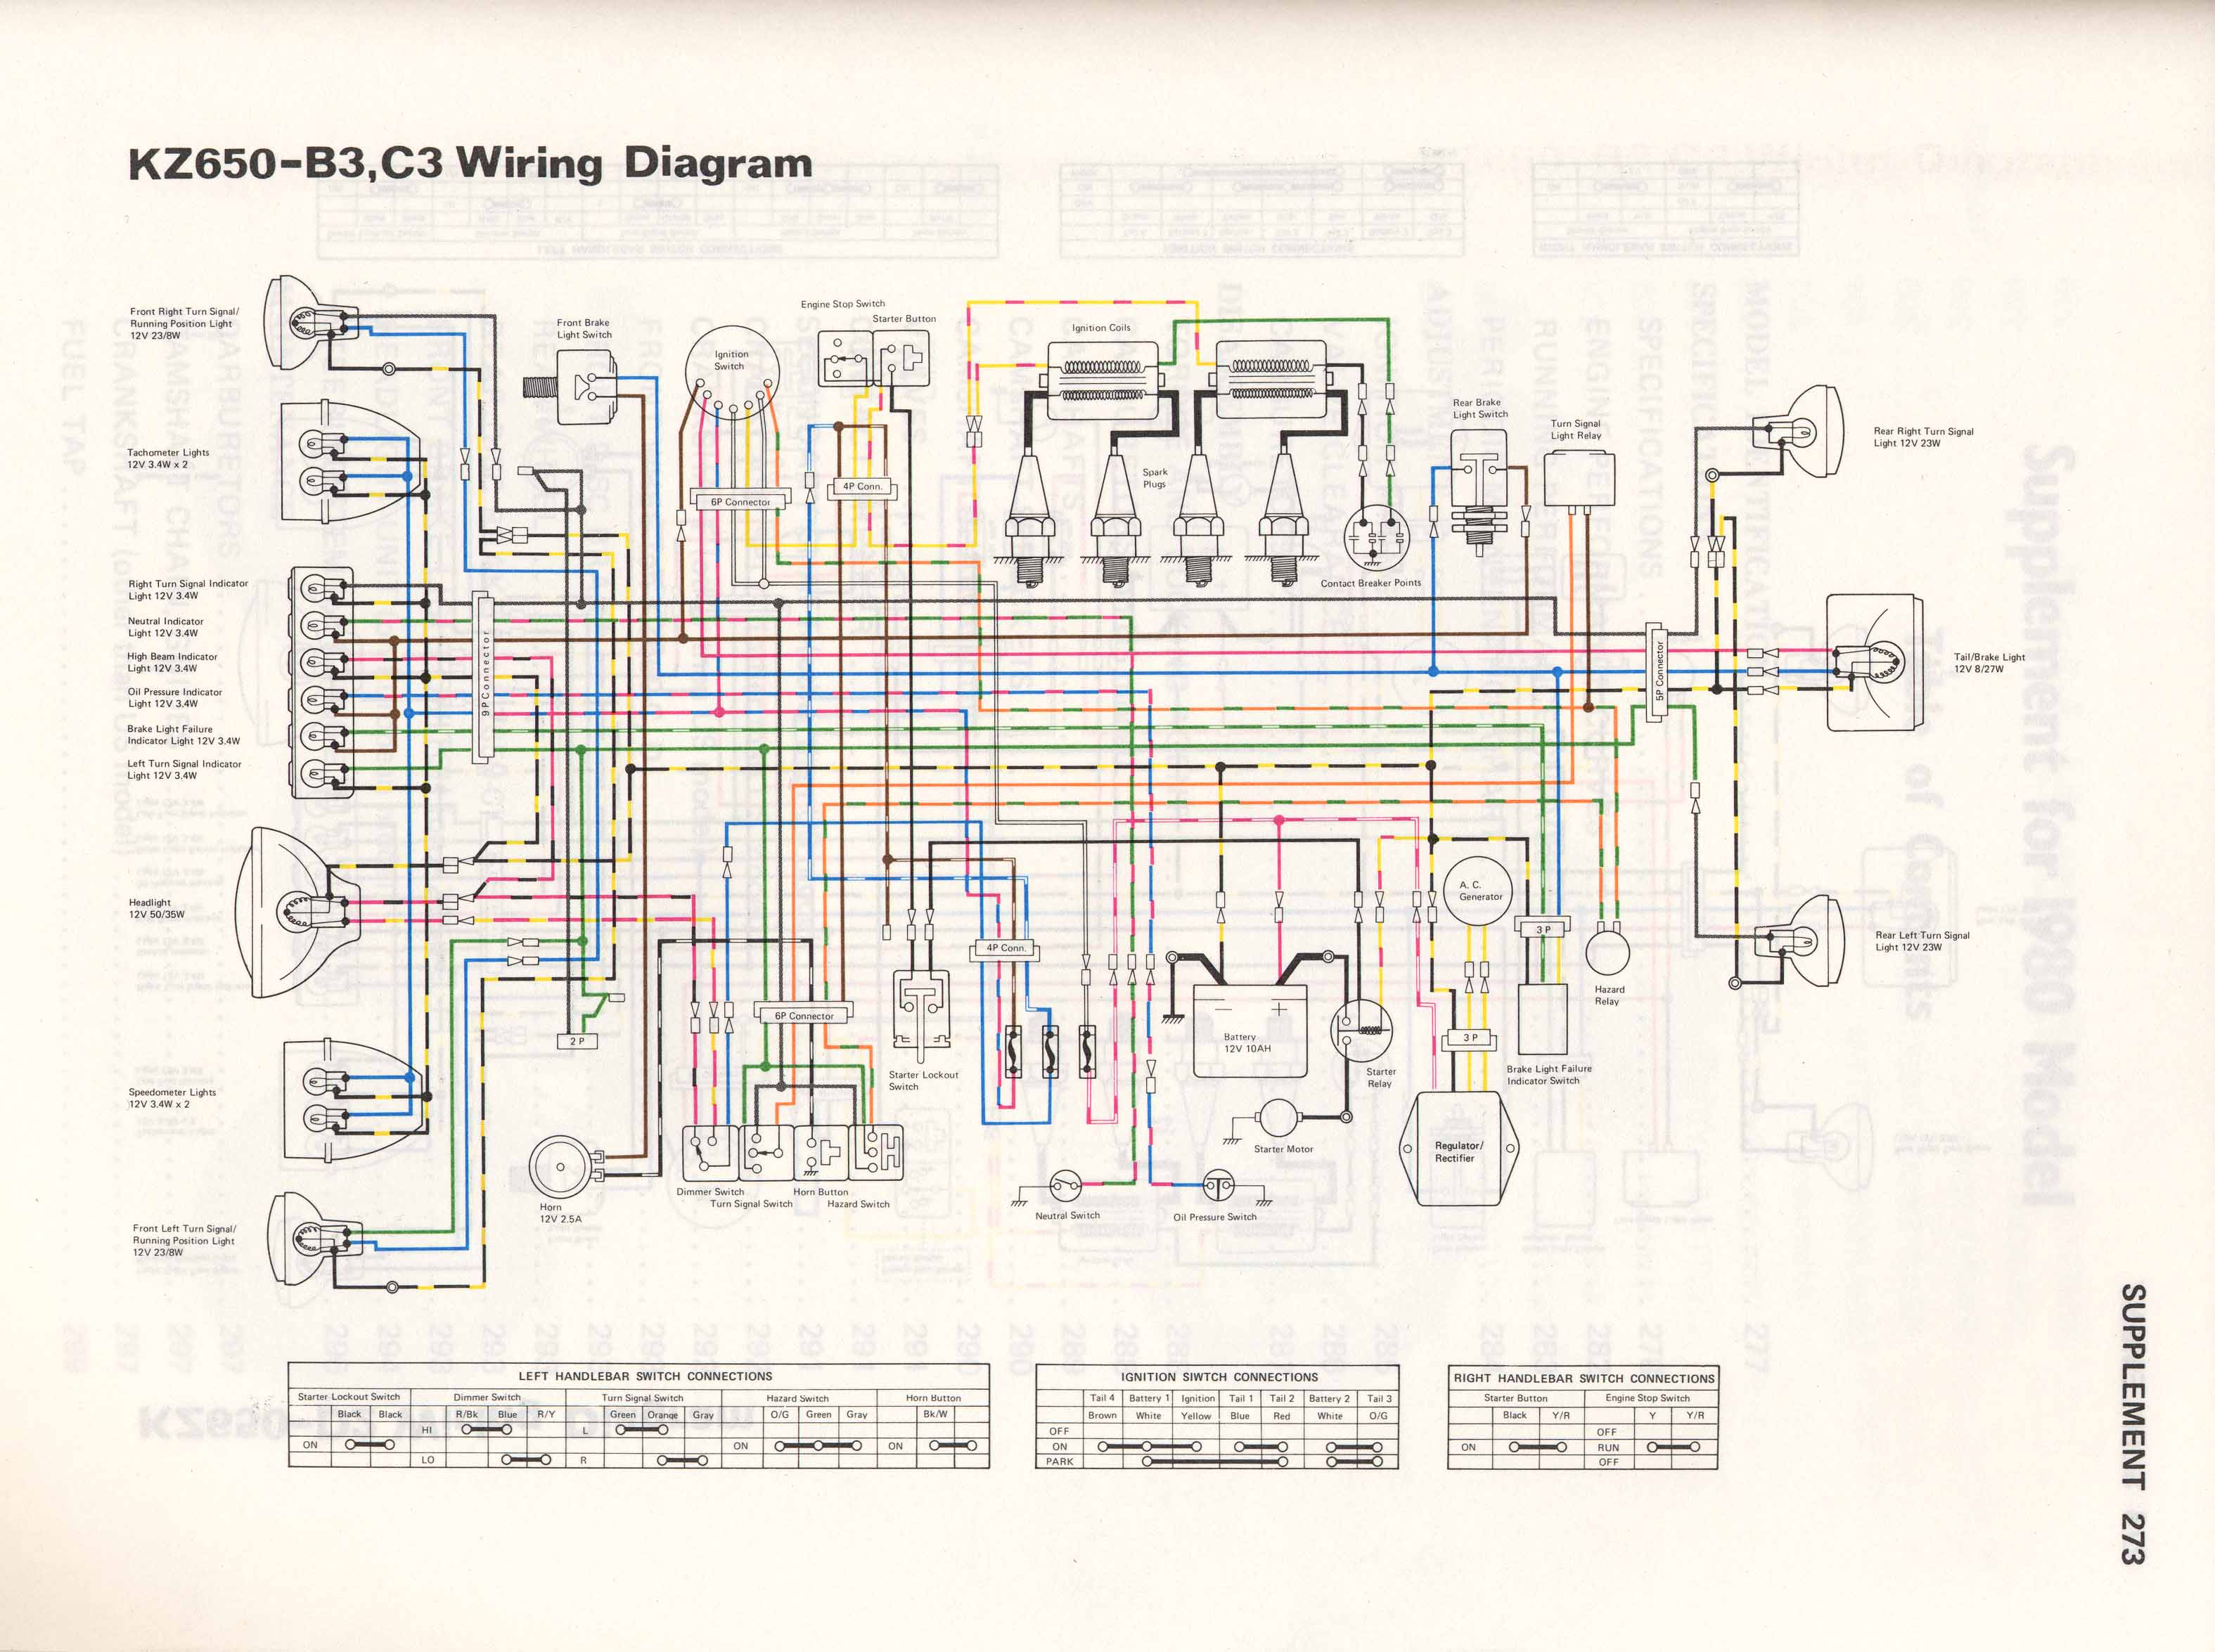 Citroen C3 2007 Wiring Diagram - Badlands Winch Controller Wiring Diagram  Free Picture - deviille.yenpancane.jeanjaures37.fr | Citroen C3 2007 Wiring Diagram |  | Wiring Diagram Resource